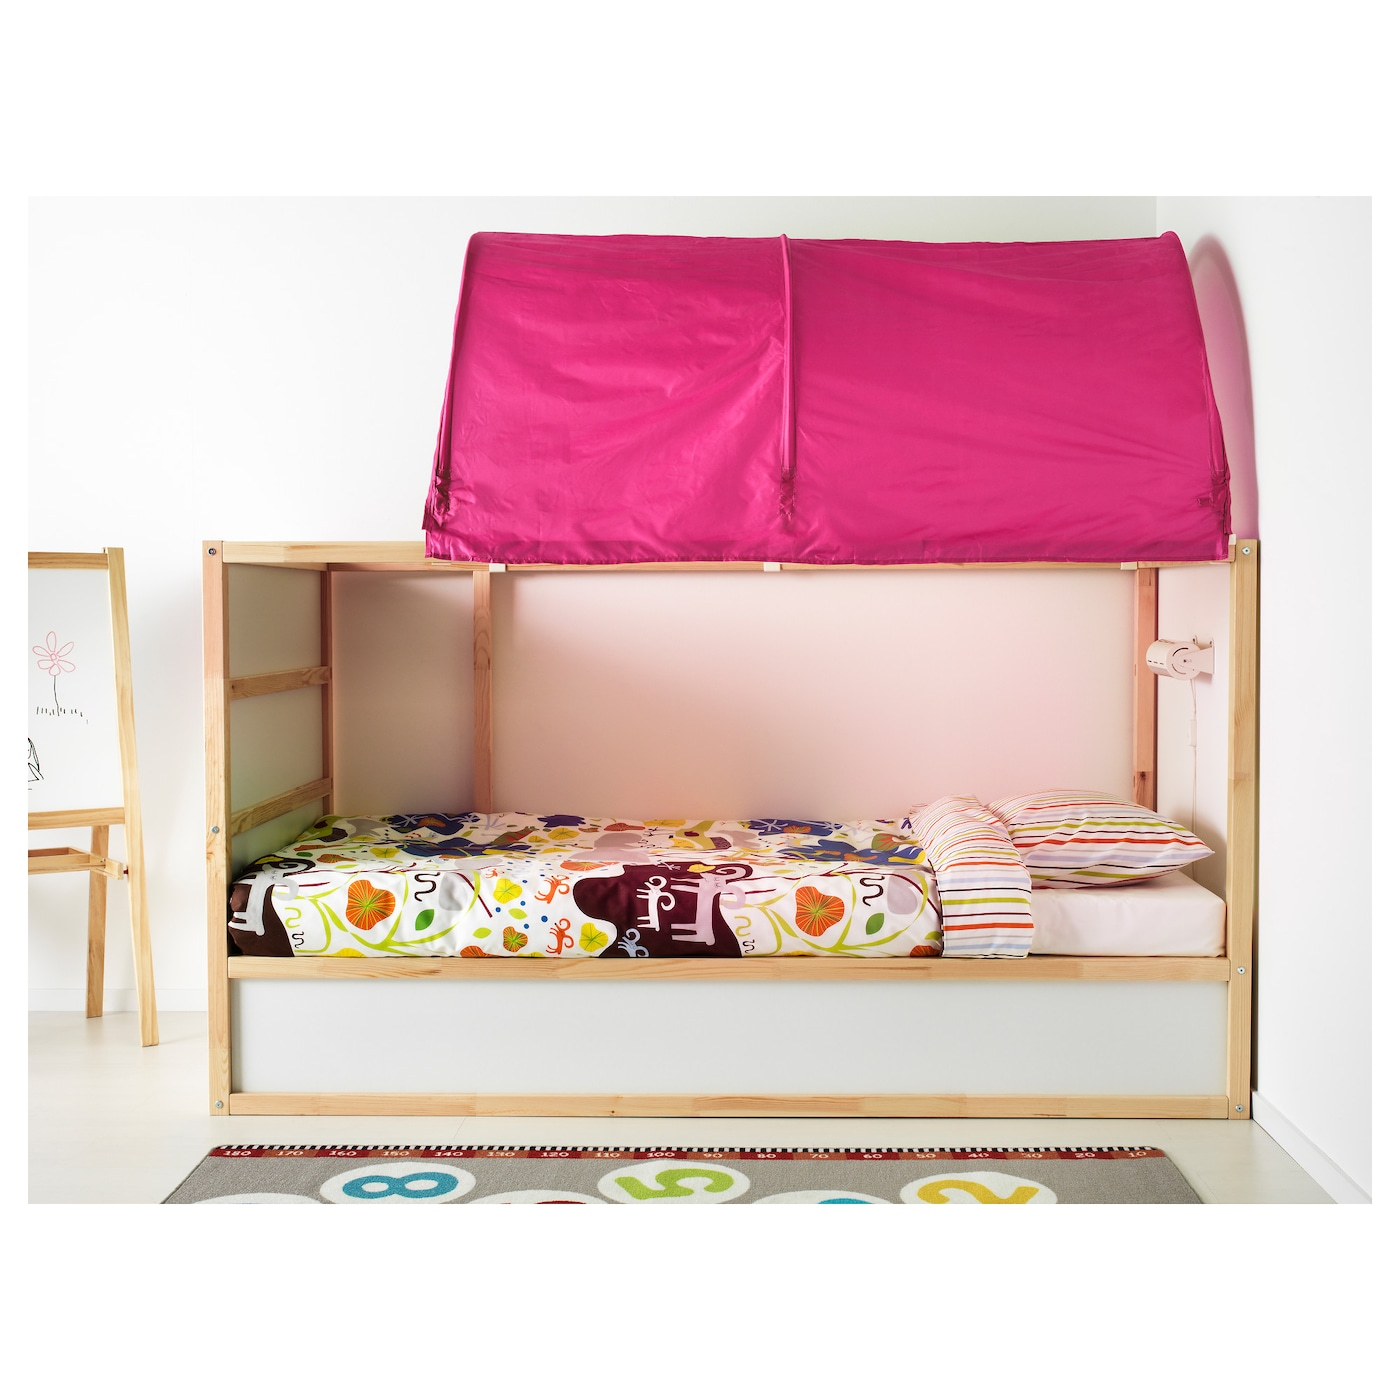 Ikea Kura Bed Tent Fits The Both In A Low And High Position